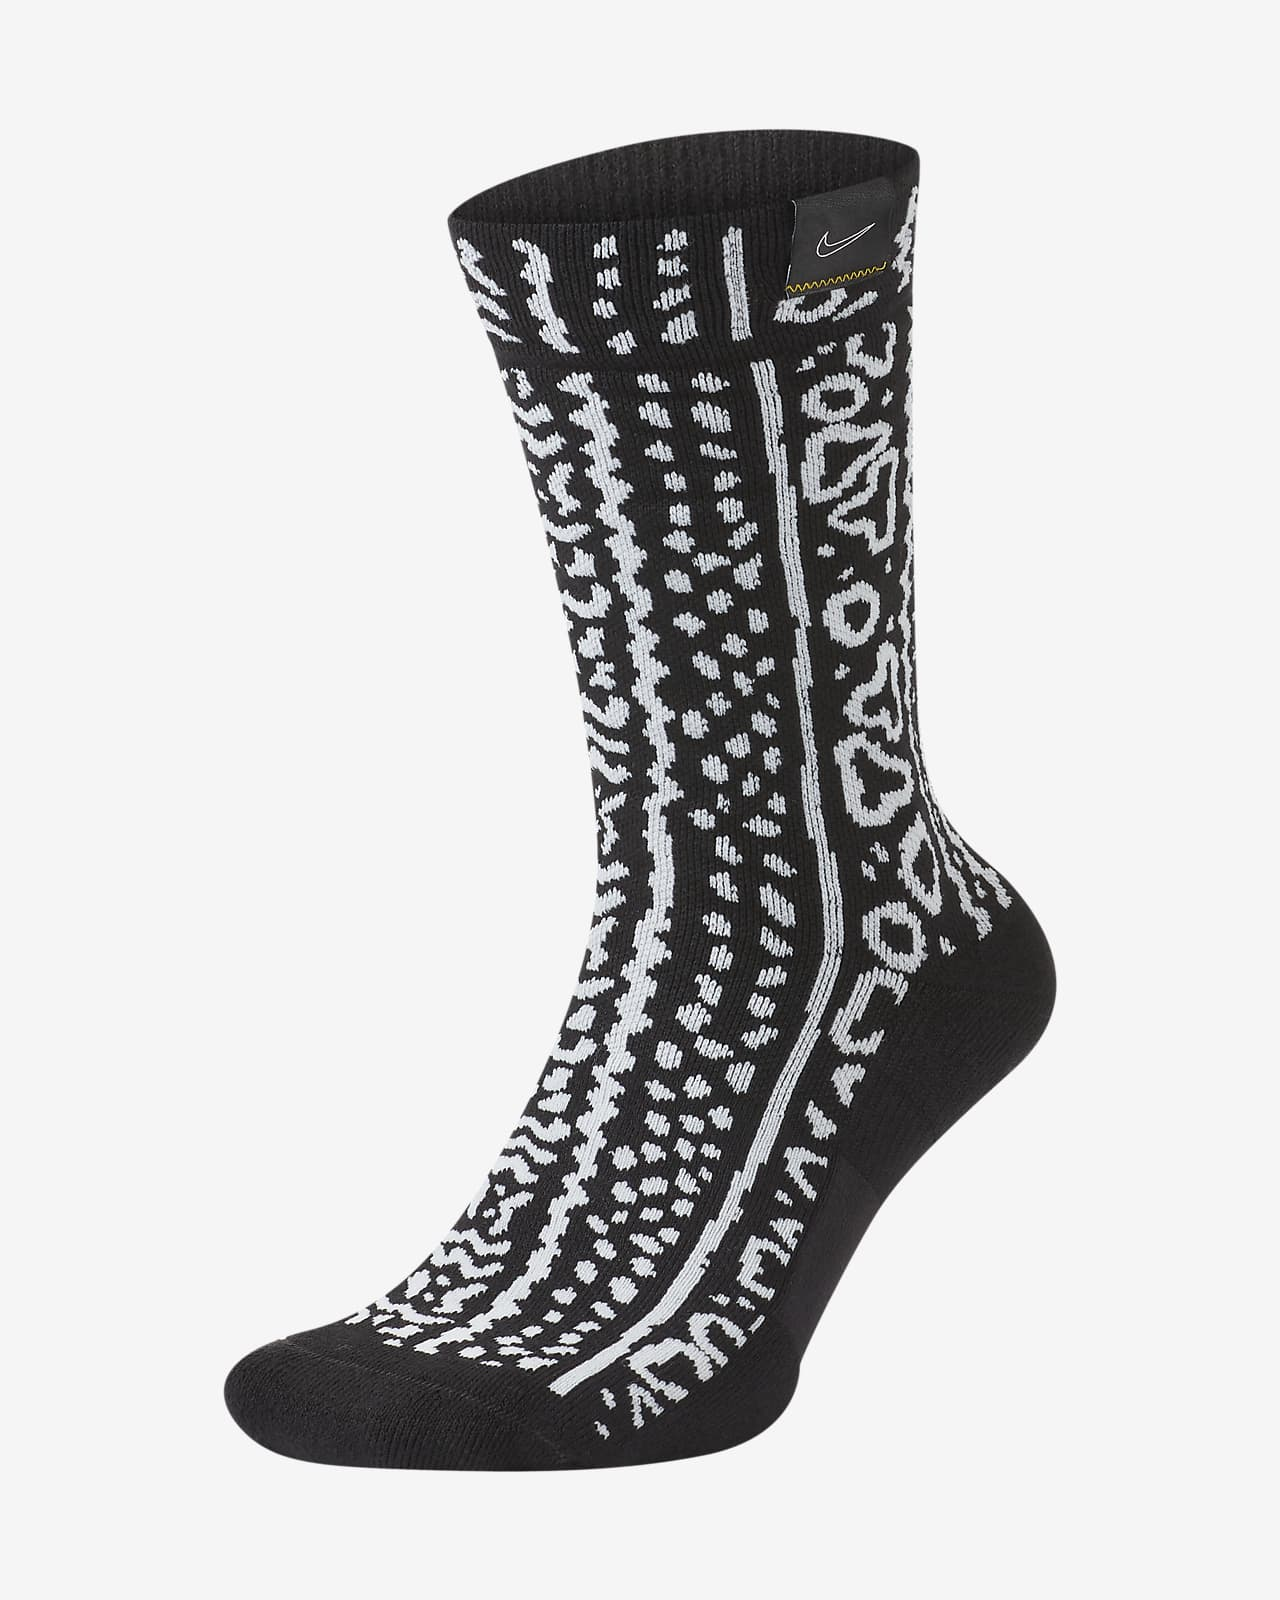 Nike SNKR SOX Exploration Series West Basketball Crew Socks